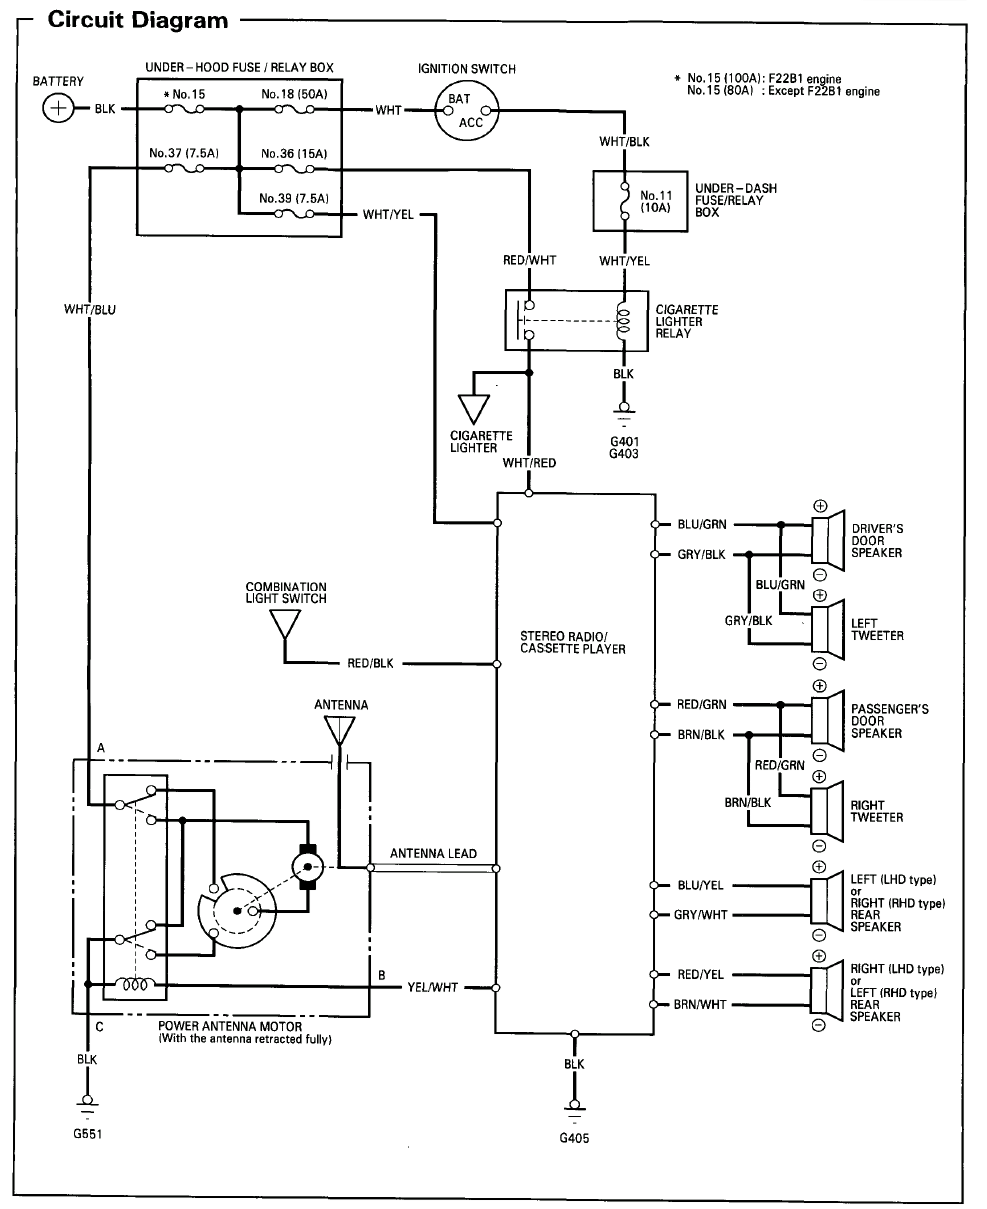 94 accord radio wiring diagram cant find the right one ... 1999 honda accord ex wiring diagram